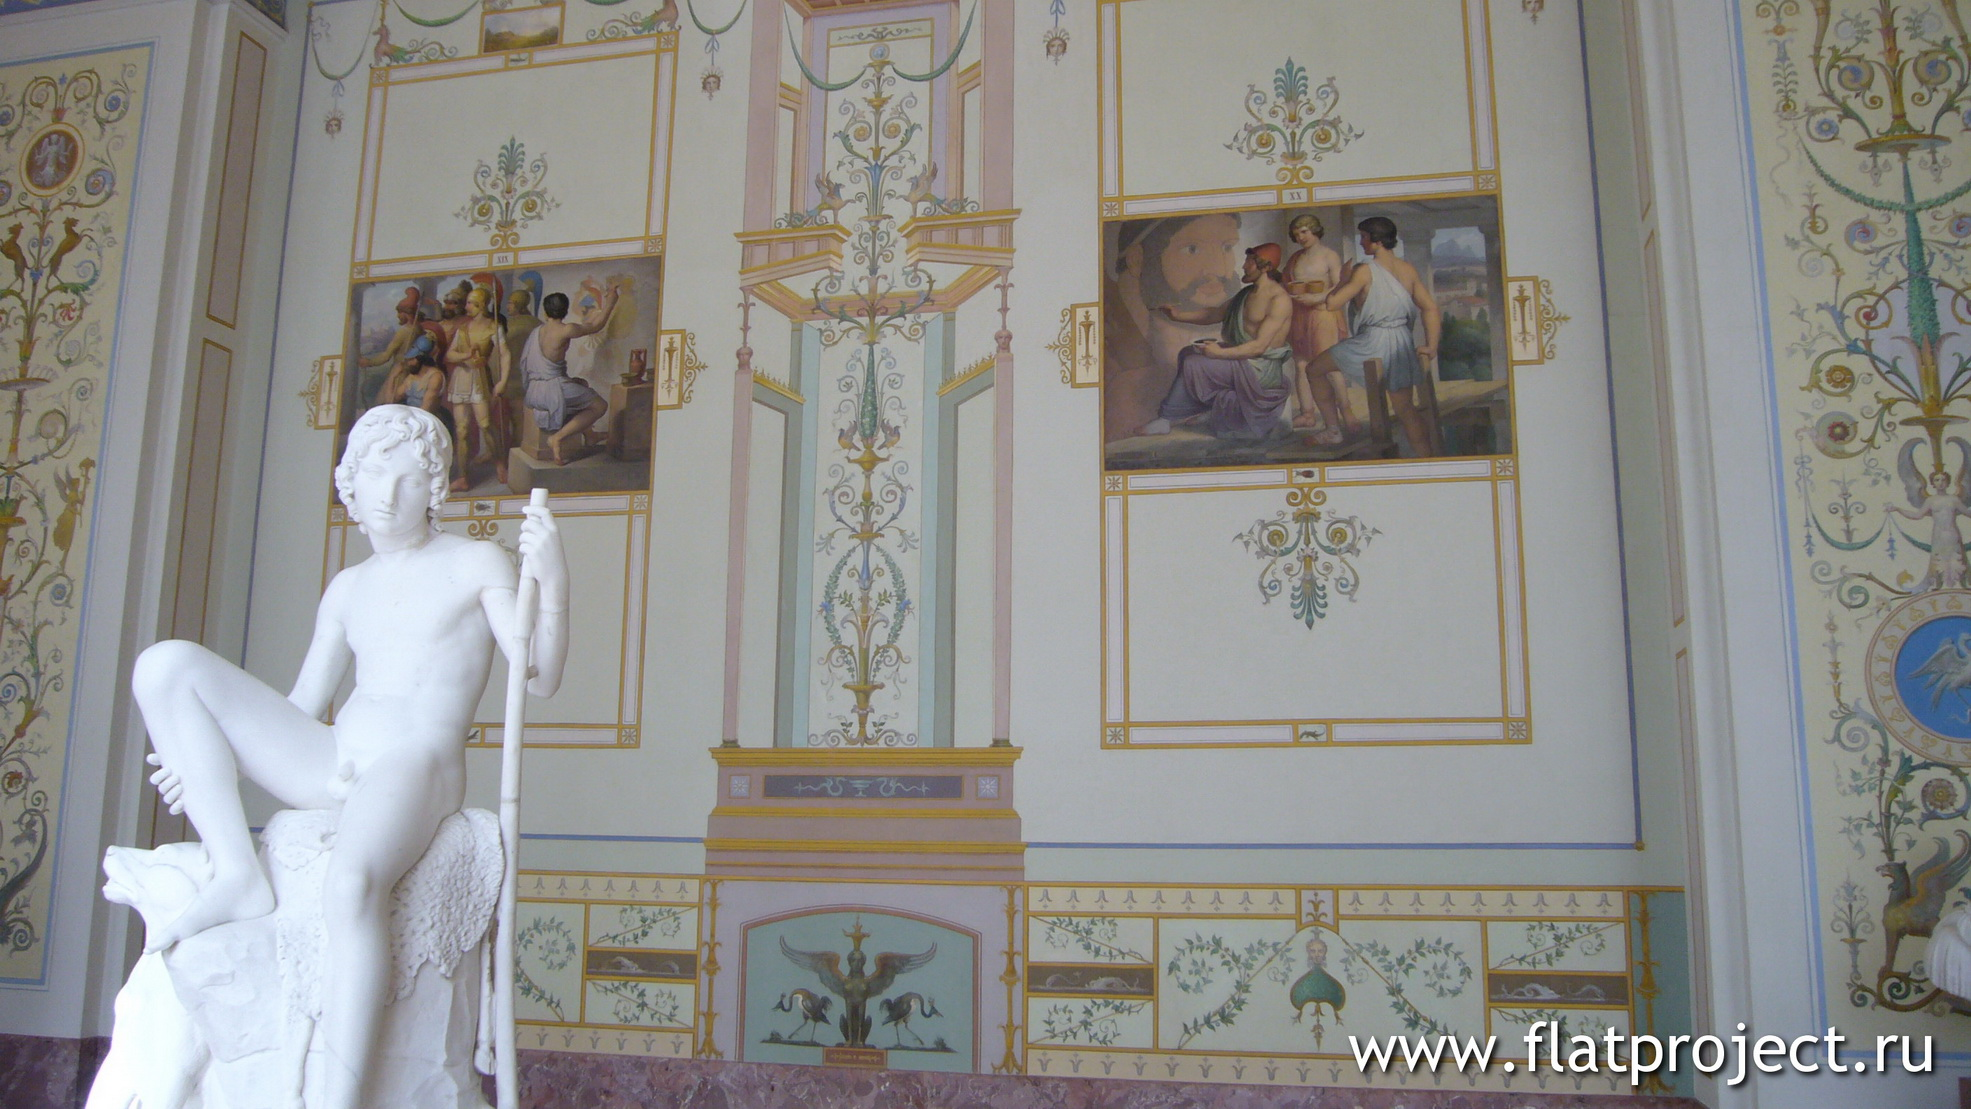 The State Hermitage museum interiors – photo 243